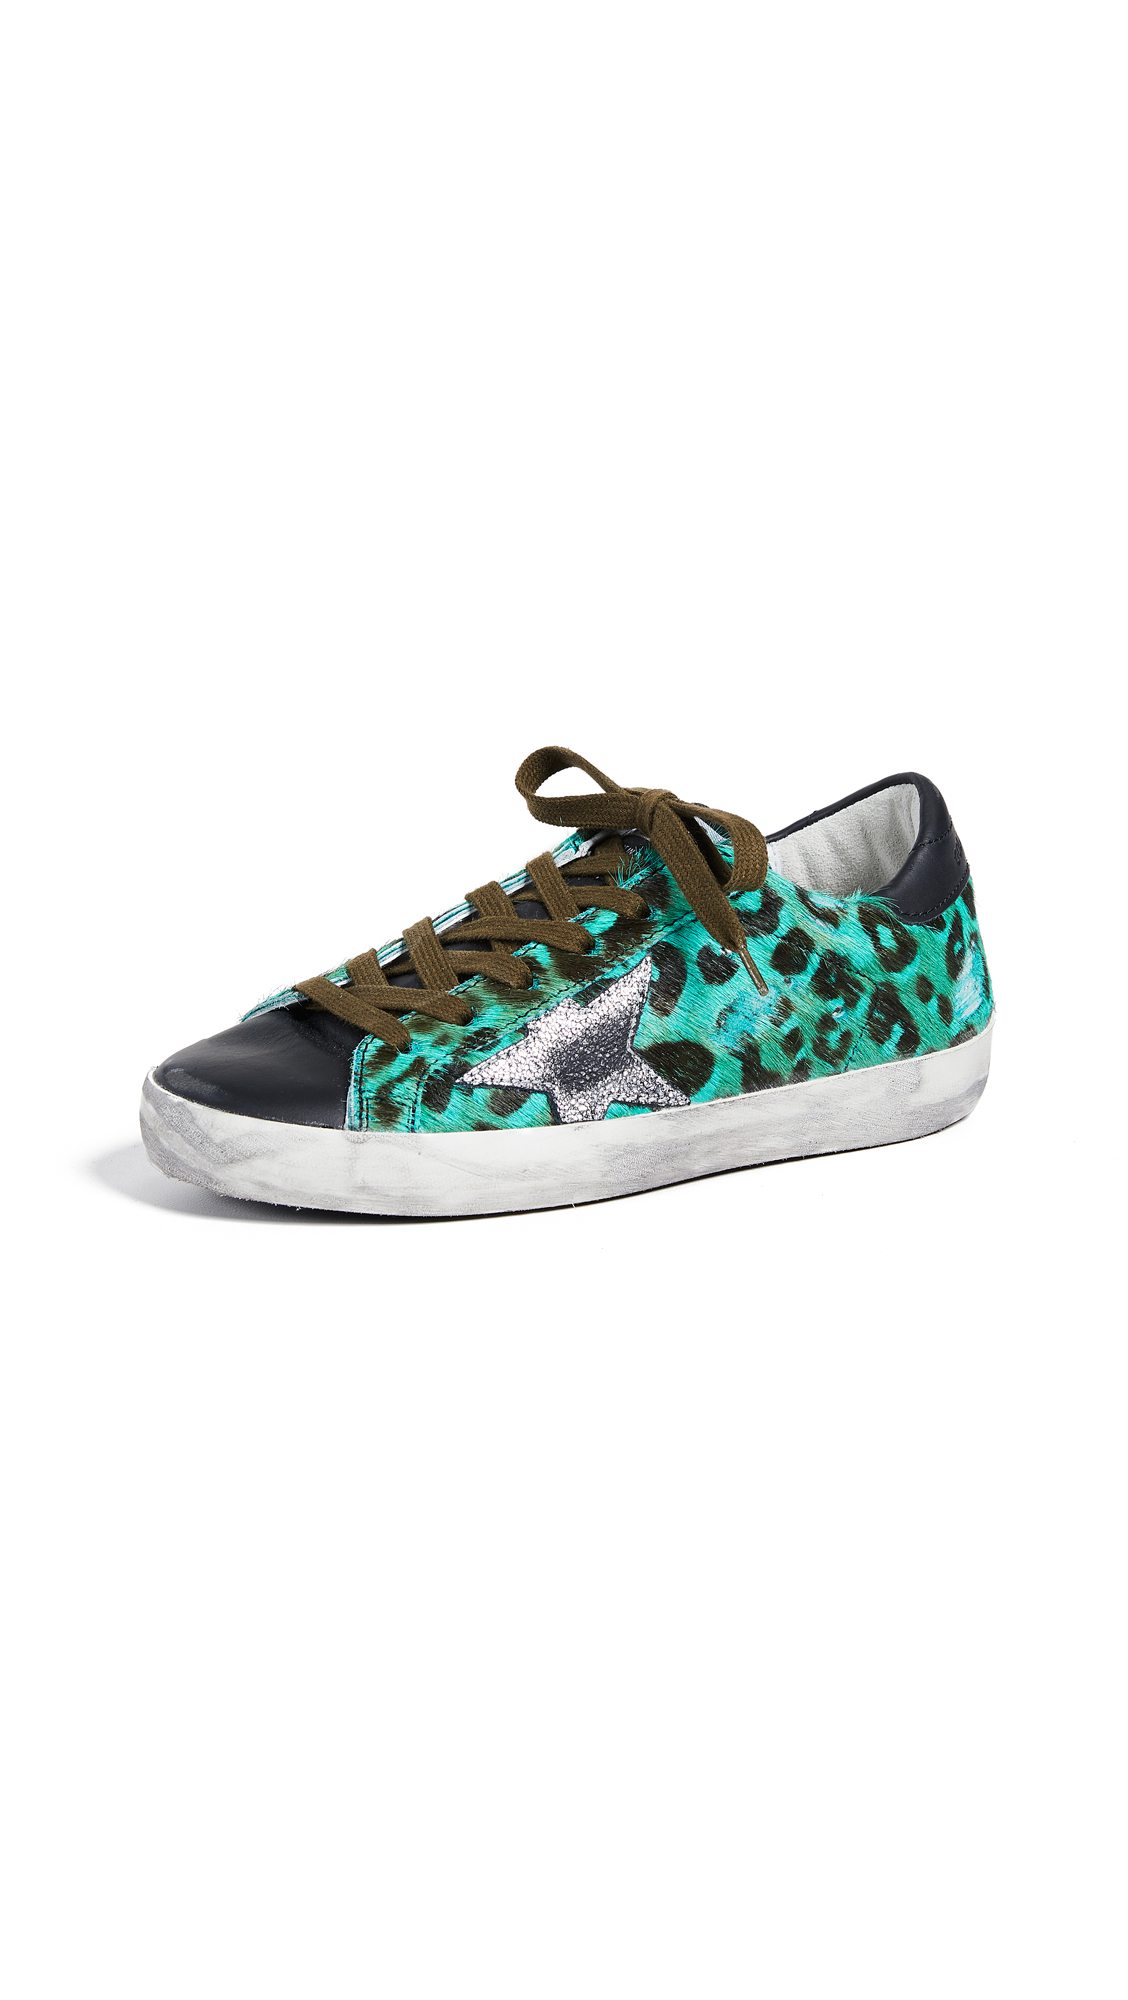 Golden Goose Superstar Sneakers - Green Emerald/Silver